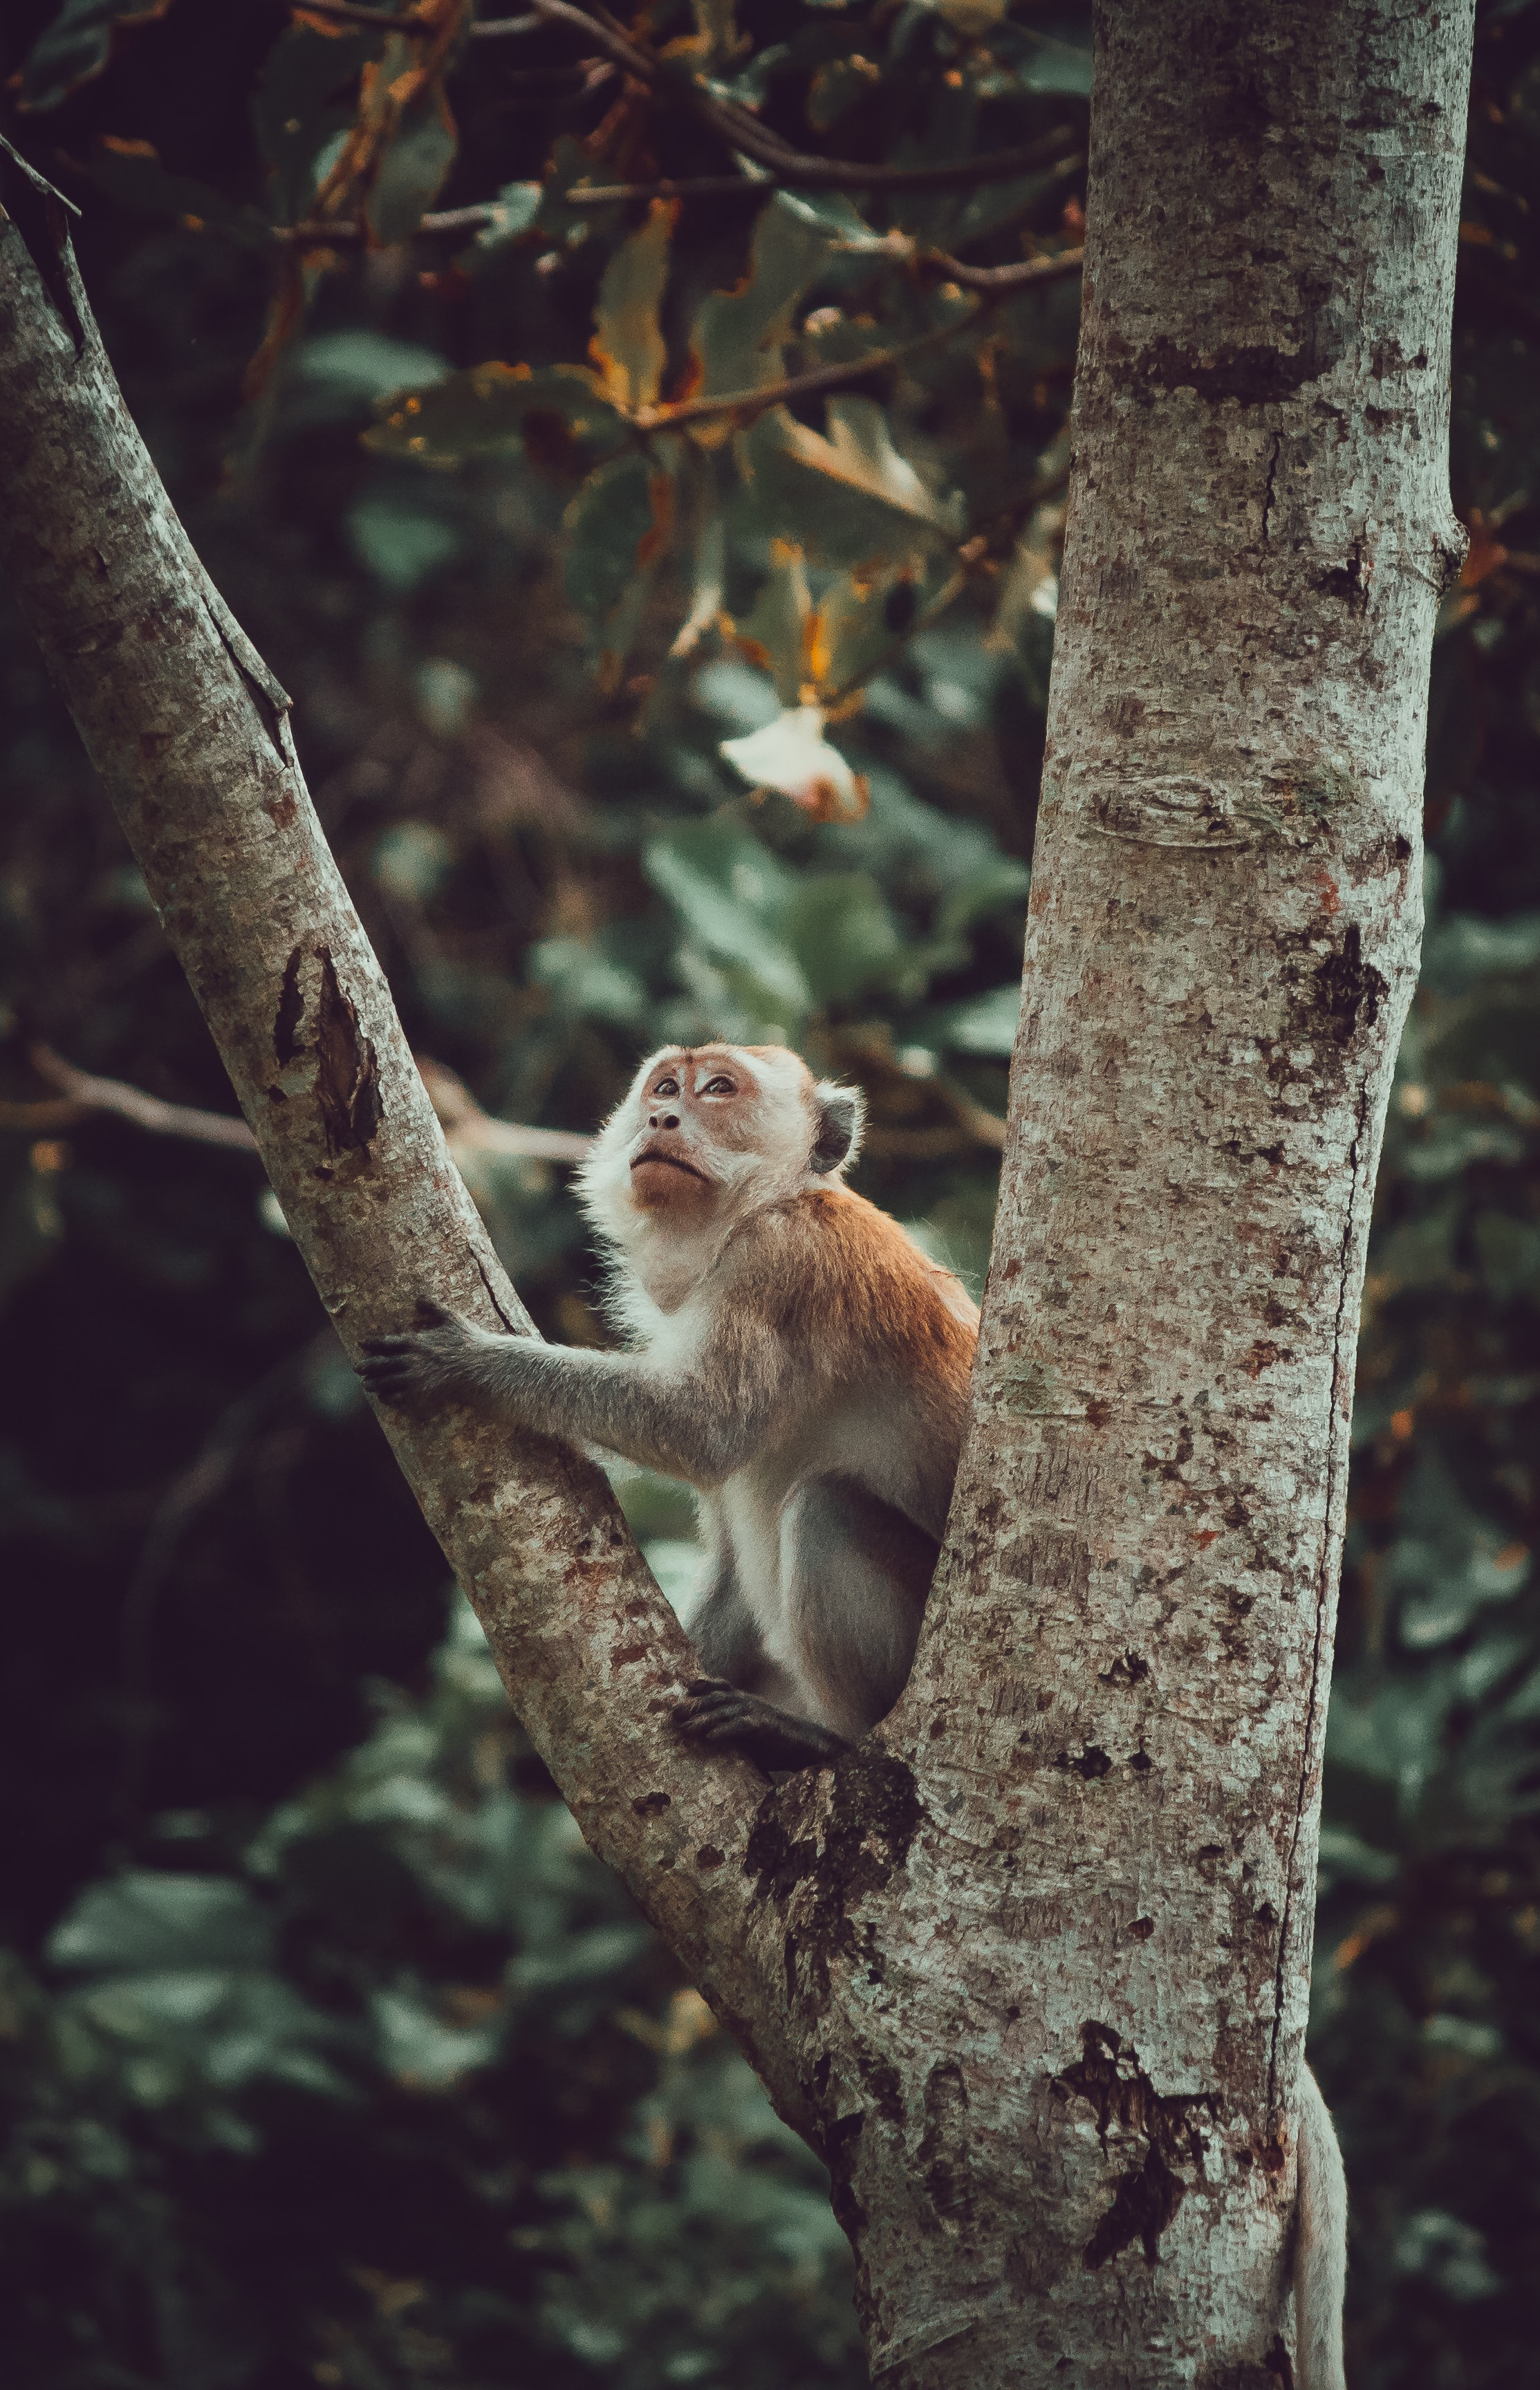 142715 download wallpaper Animals, Monkey, Marmoset, Sight, Opinion, Nice, Sweetheart, Wood, Tree screensavers and pictures for free